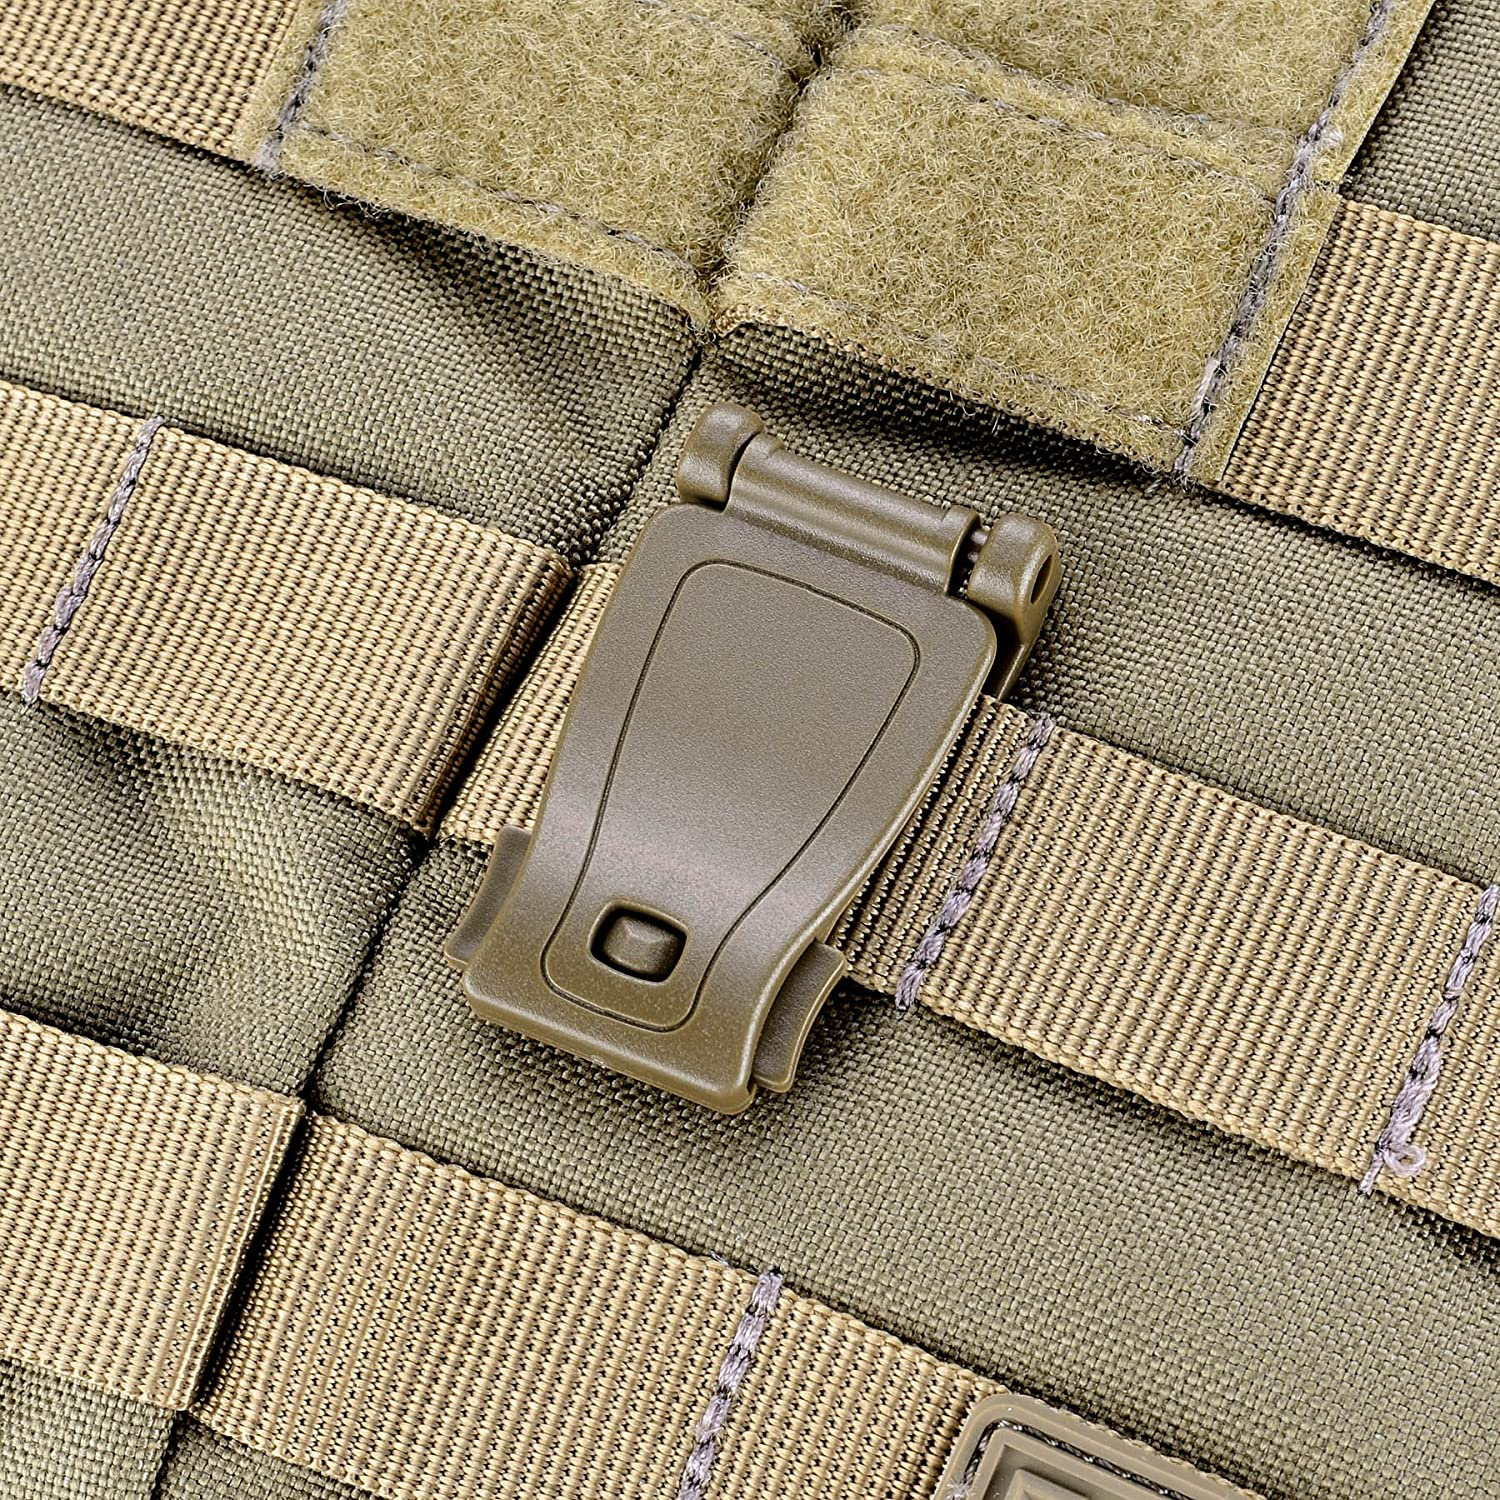 Backpack Boosteady Multipurpose MOLLE Clip Tactical Strap Management Tool Web Dominator Buckle for Tactical Bag